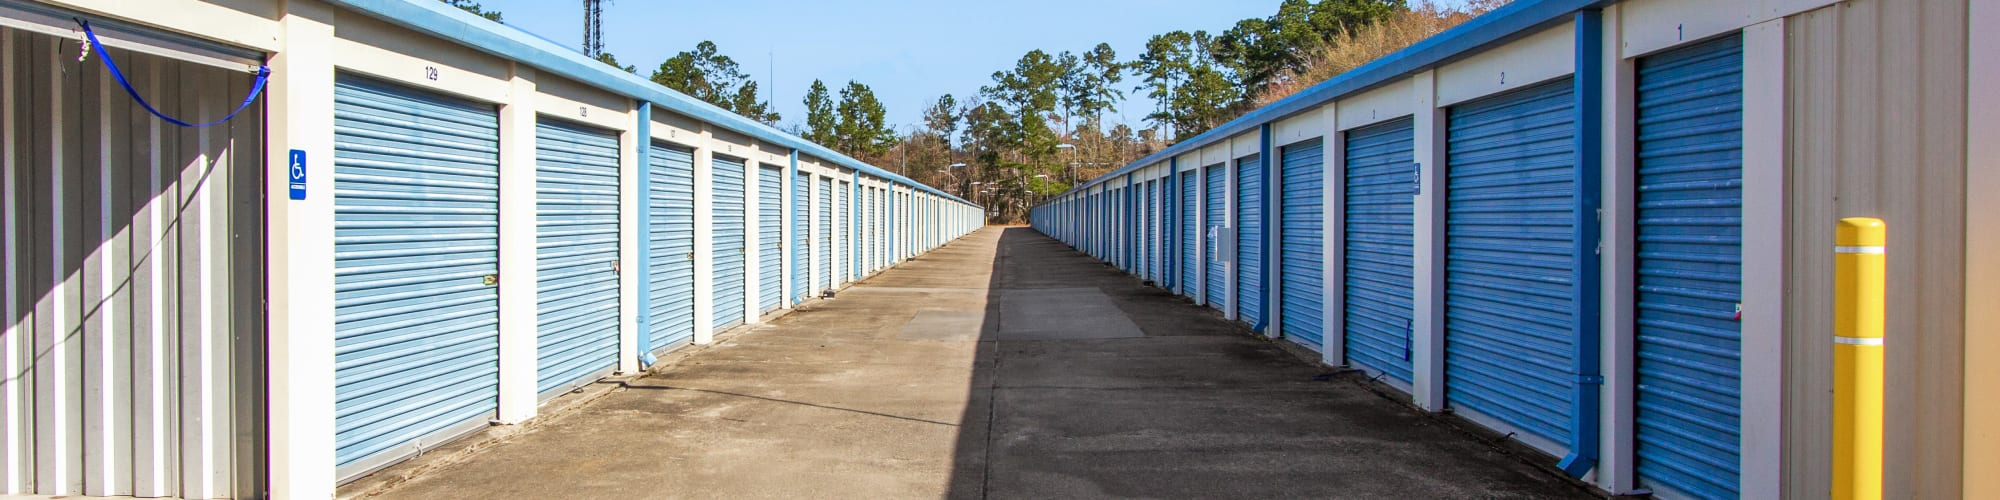 Events and Auctions at Global Self Storage in Summerville, South Carolina